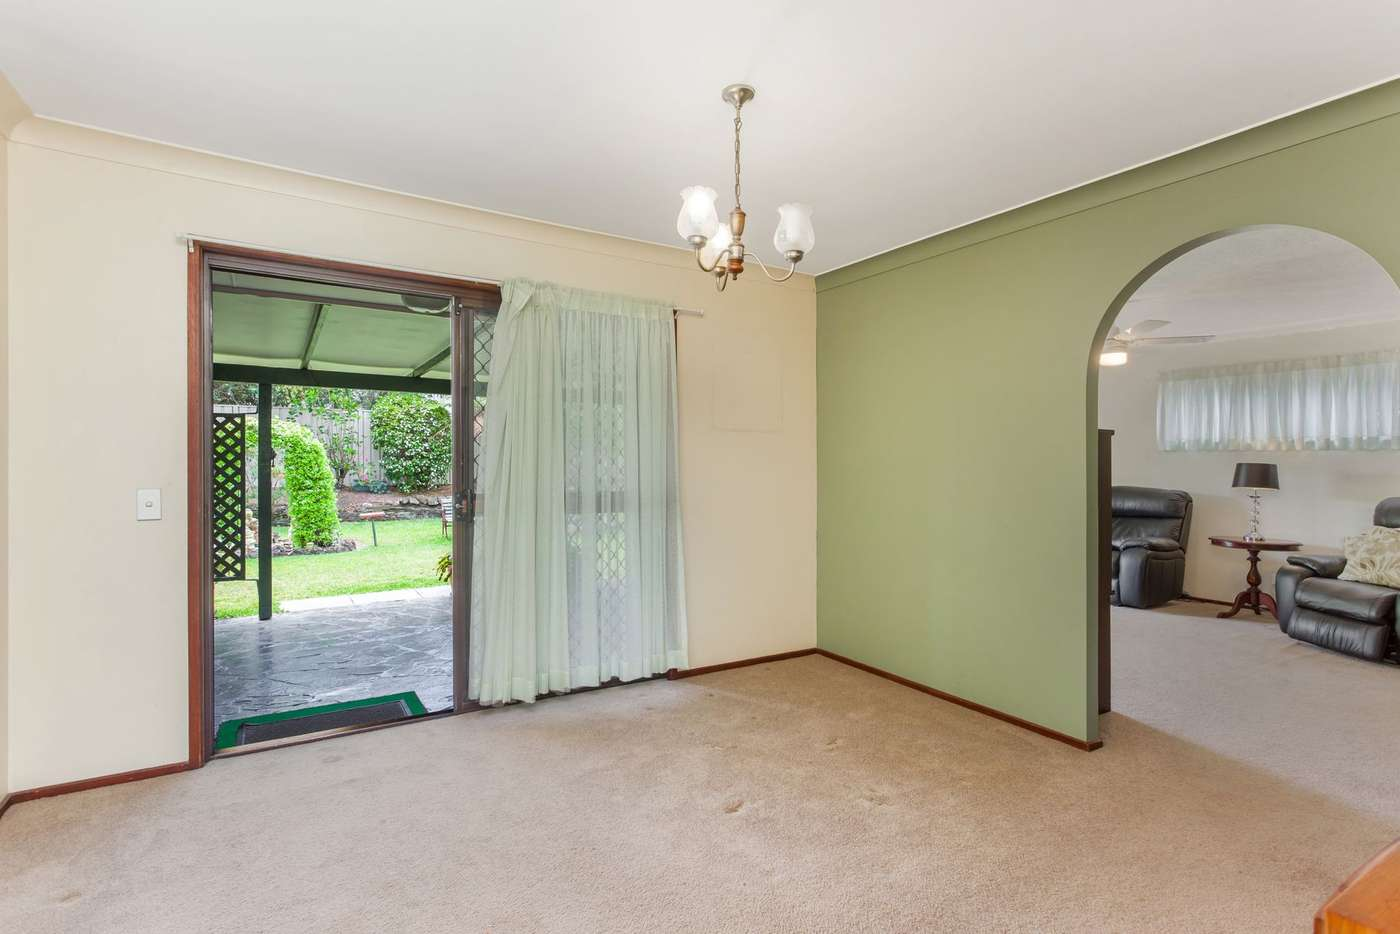 Fifth view of Homely house listing, 22 Treeview Drive, Burleigh Waters QLD 4220